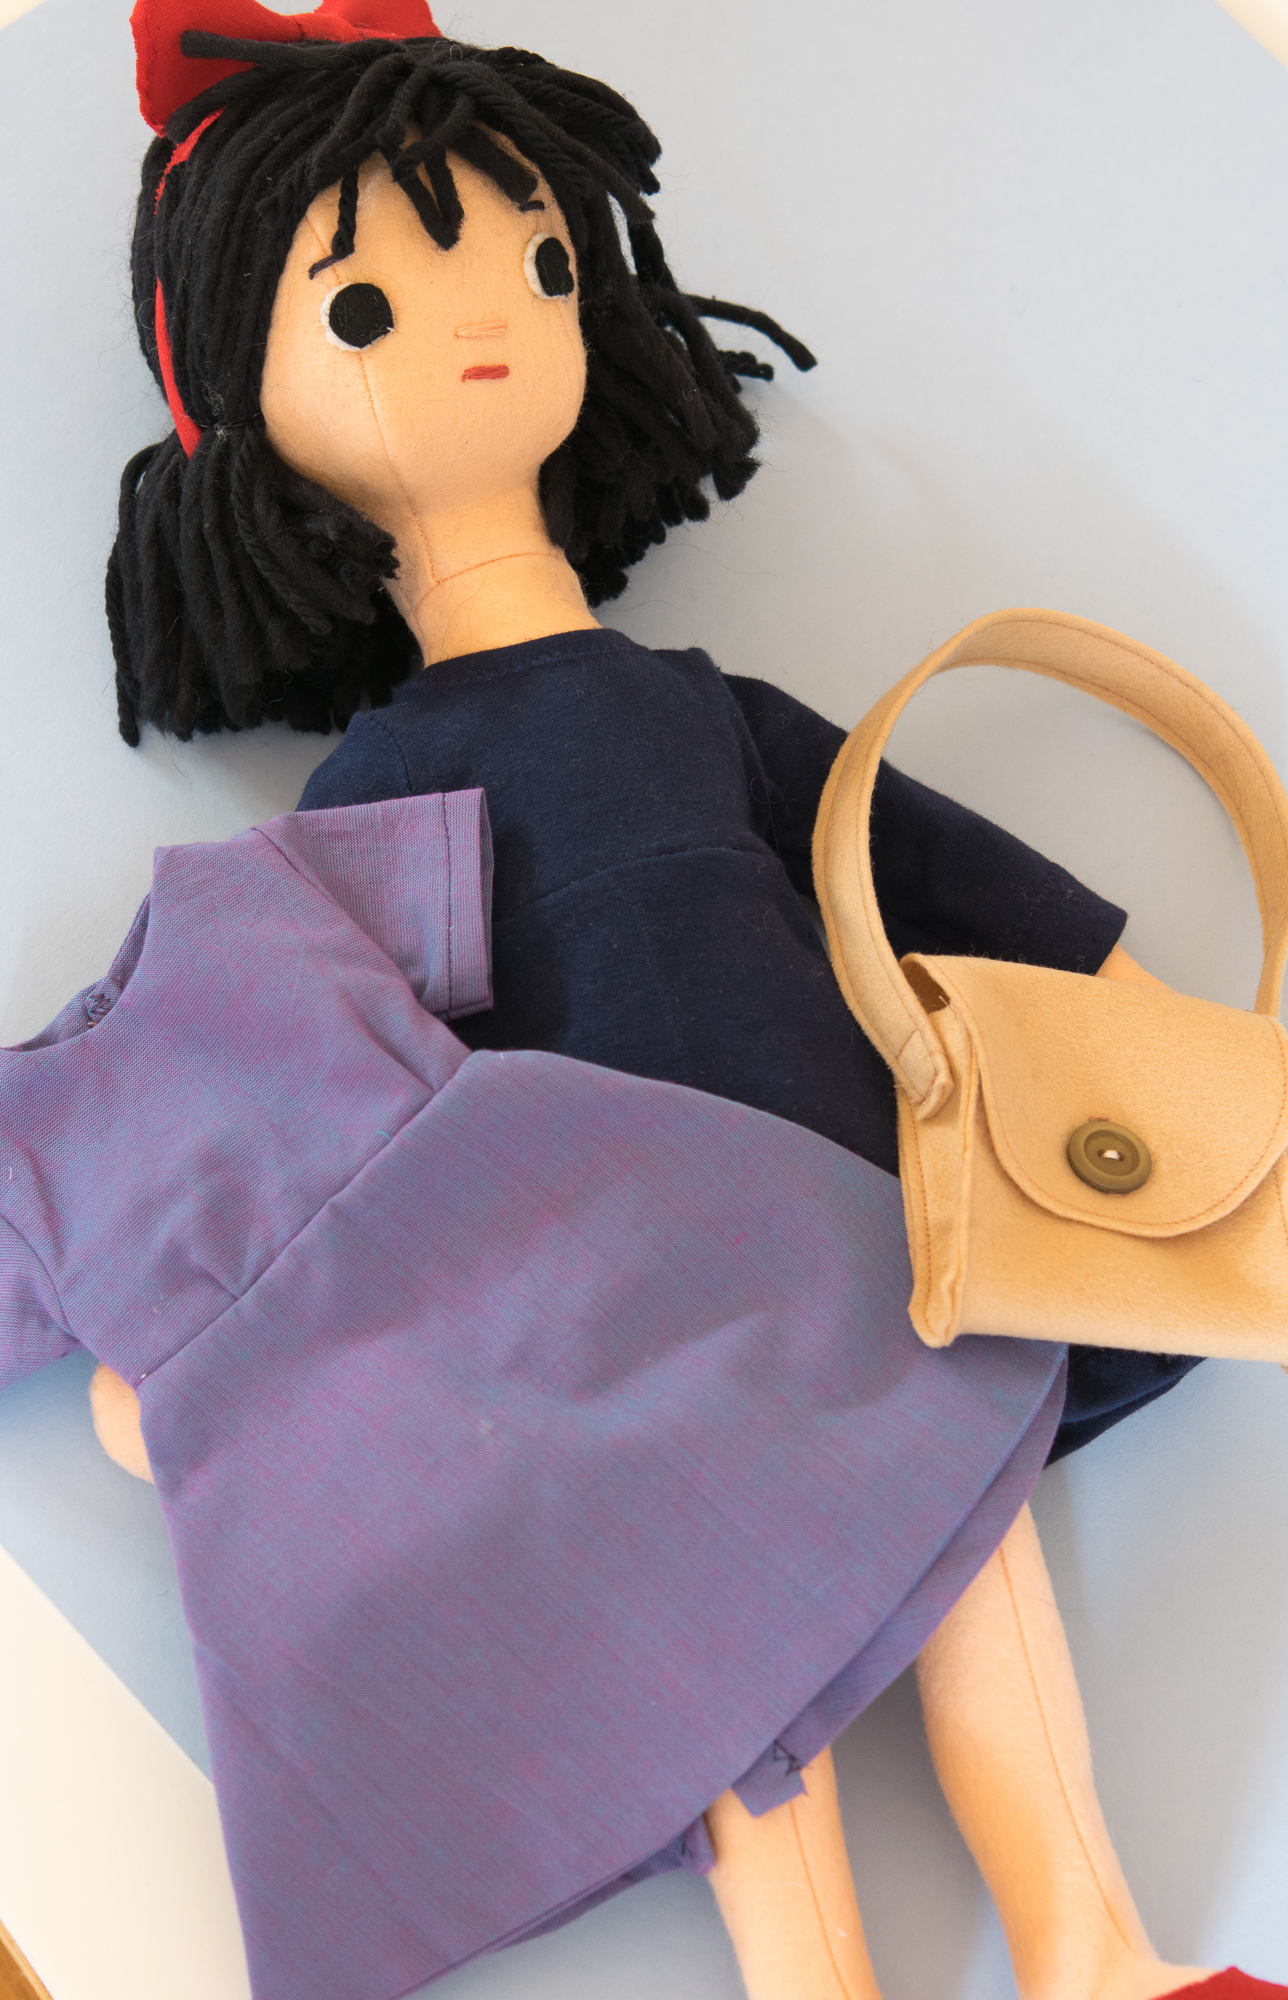 Kiki the Delivery Doll